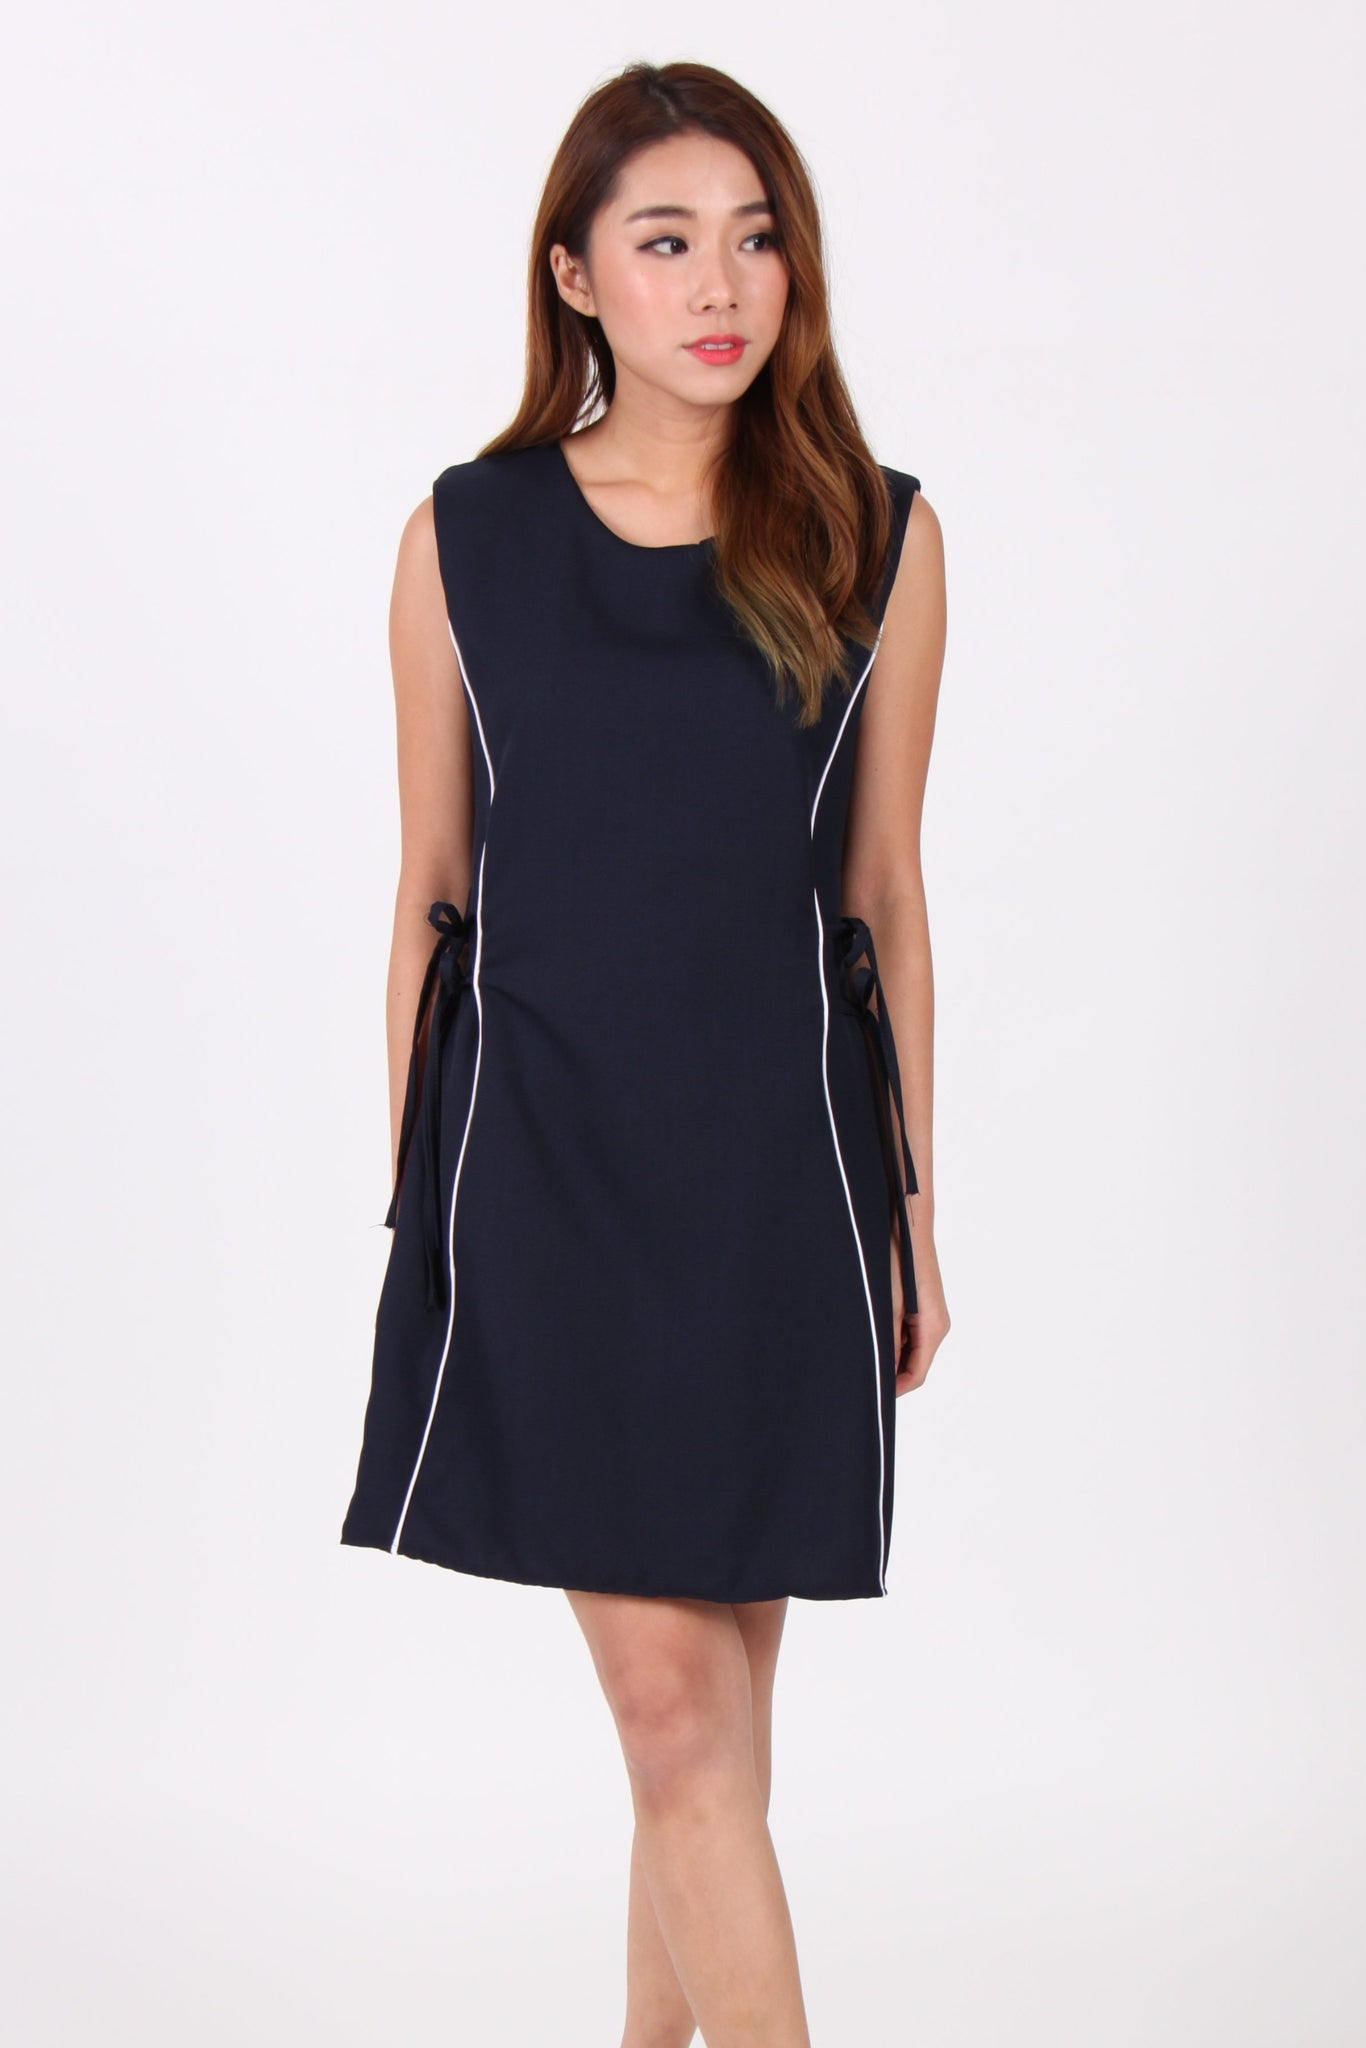 Sleeveless Contrast Ribbon Side Shift Dress in Navy Blue